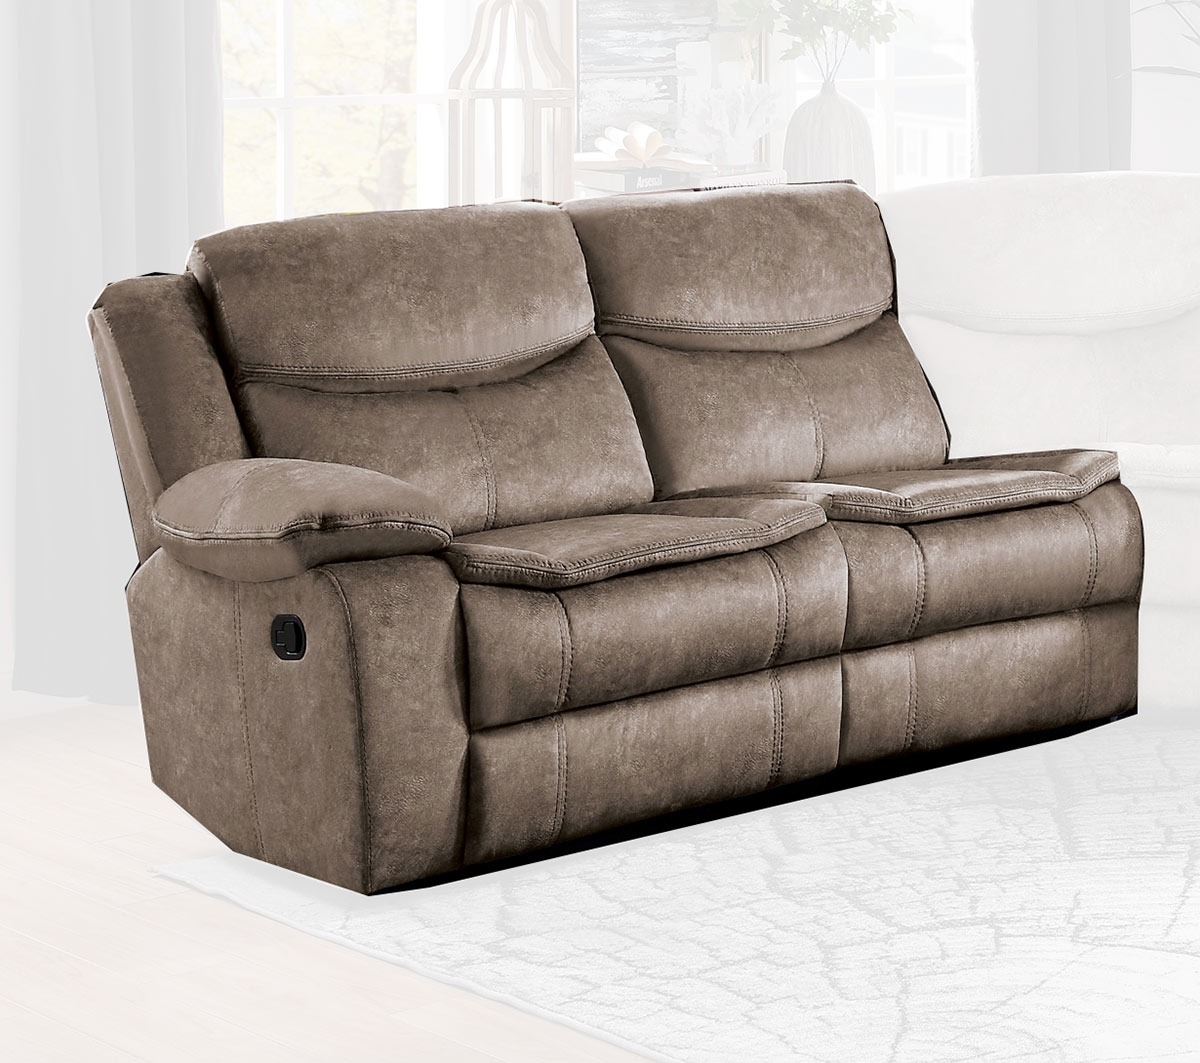 Homelegance Bastrop Left Side Reclining Love Seat - Brown